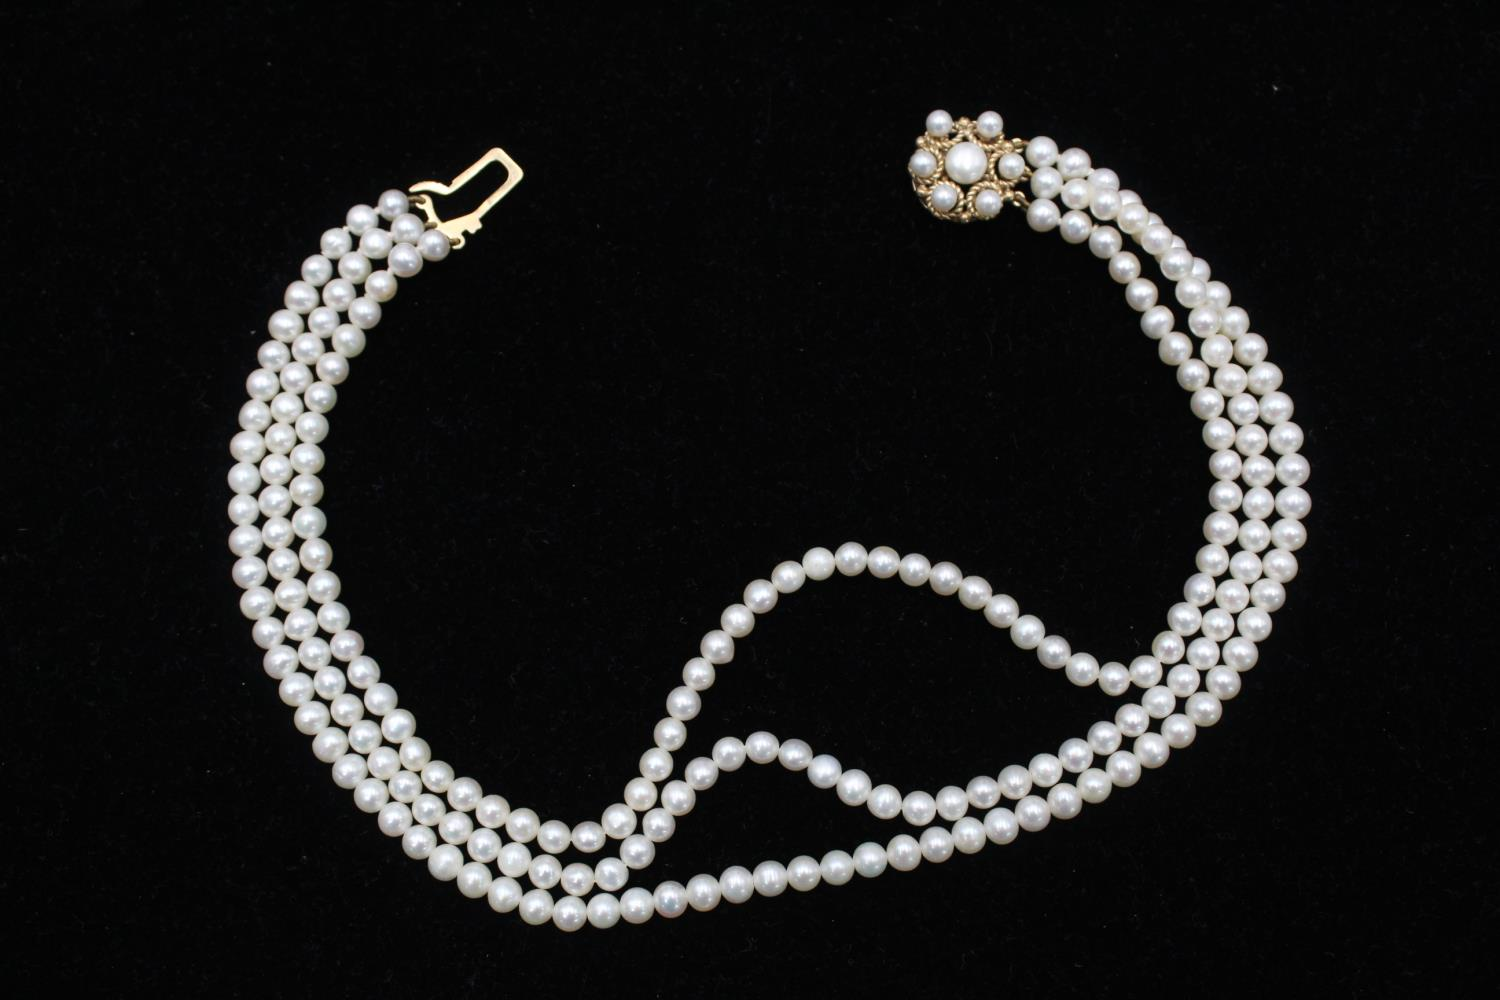 9ct Gold clasp pearl multi strand choker necklace 40.2g - Image 4 of 5